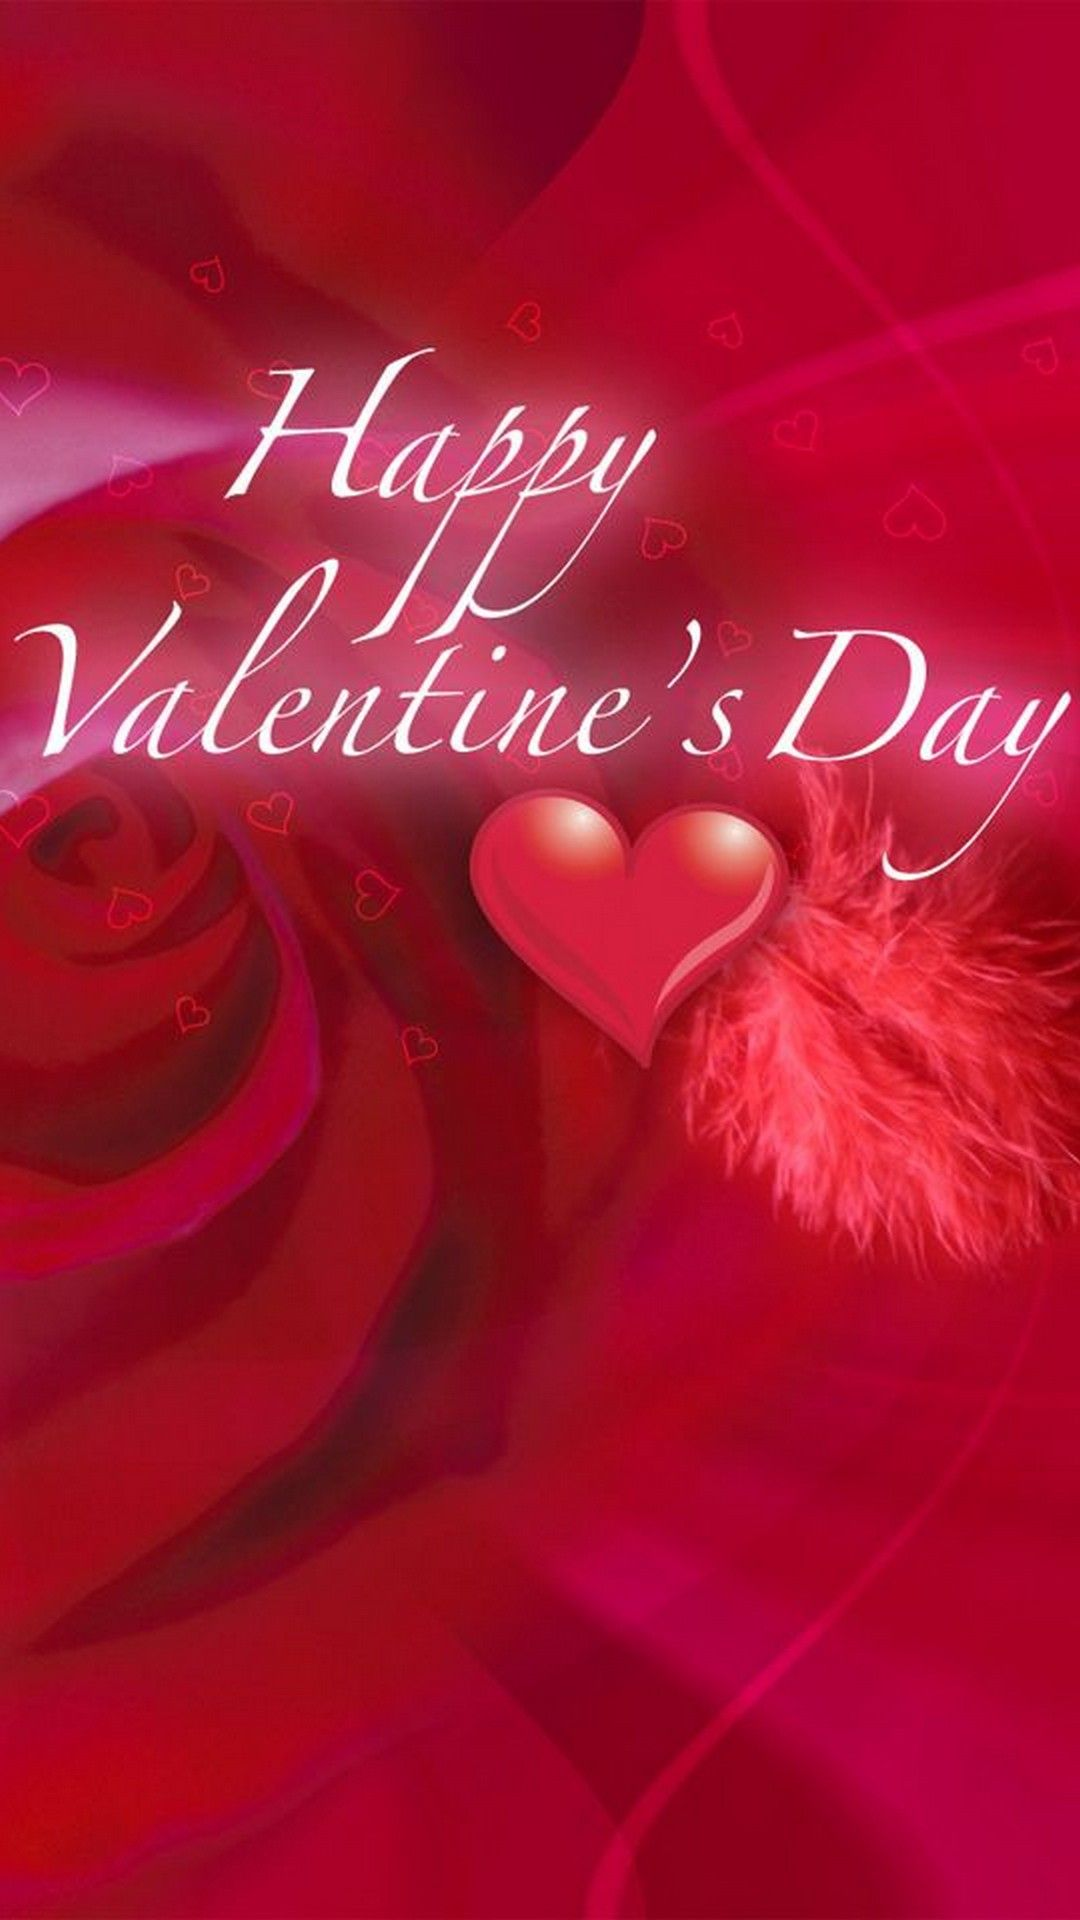 Best Happy Valentine Day iPhone Wallpapers